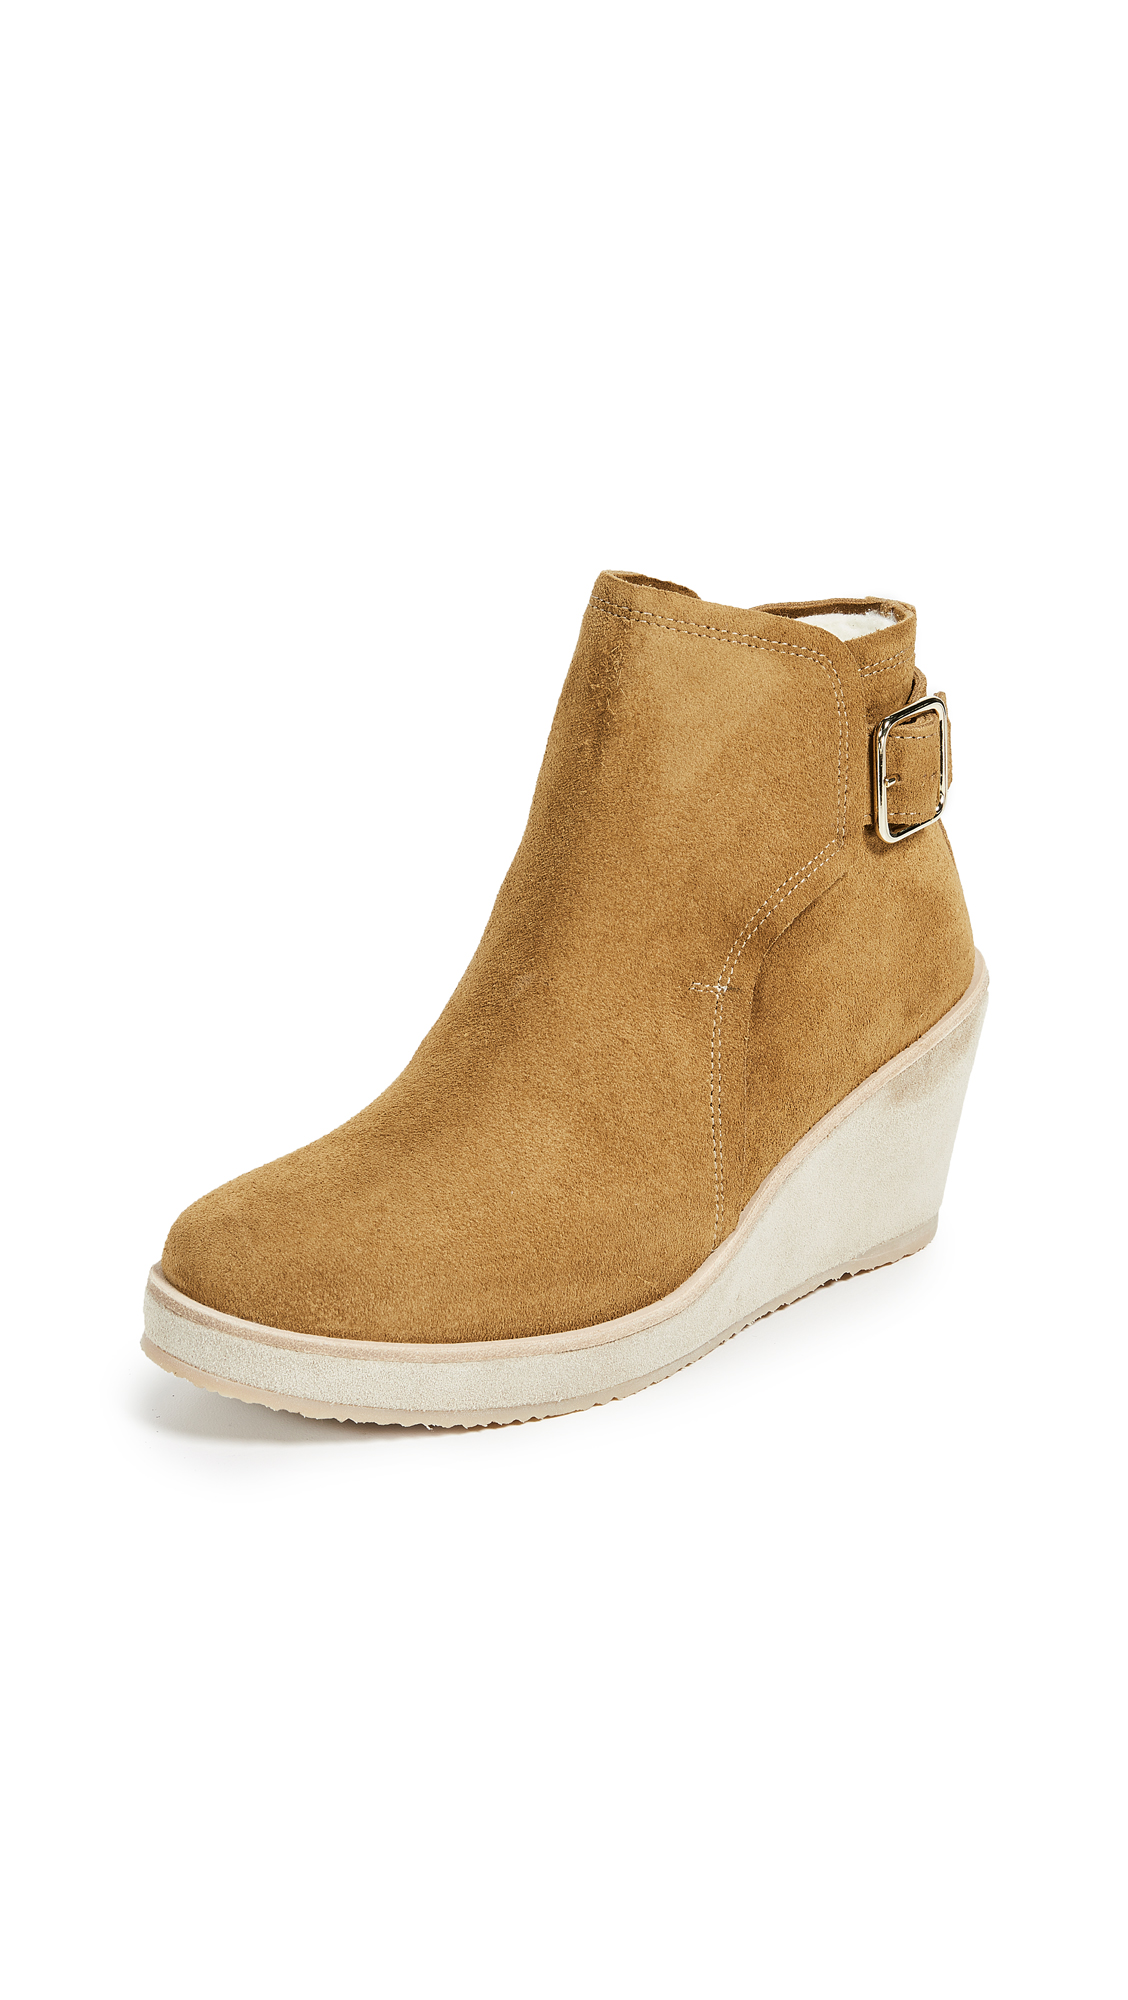 A.P.C. Virginie Boots - Camel